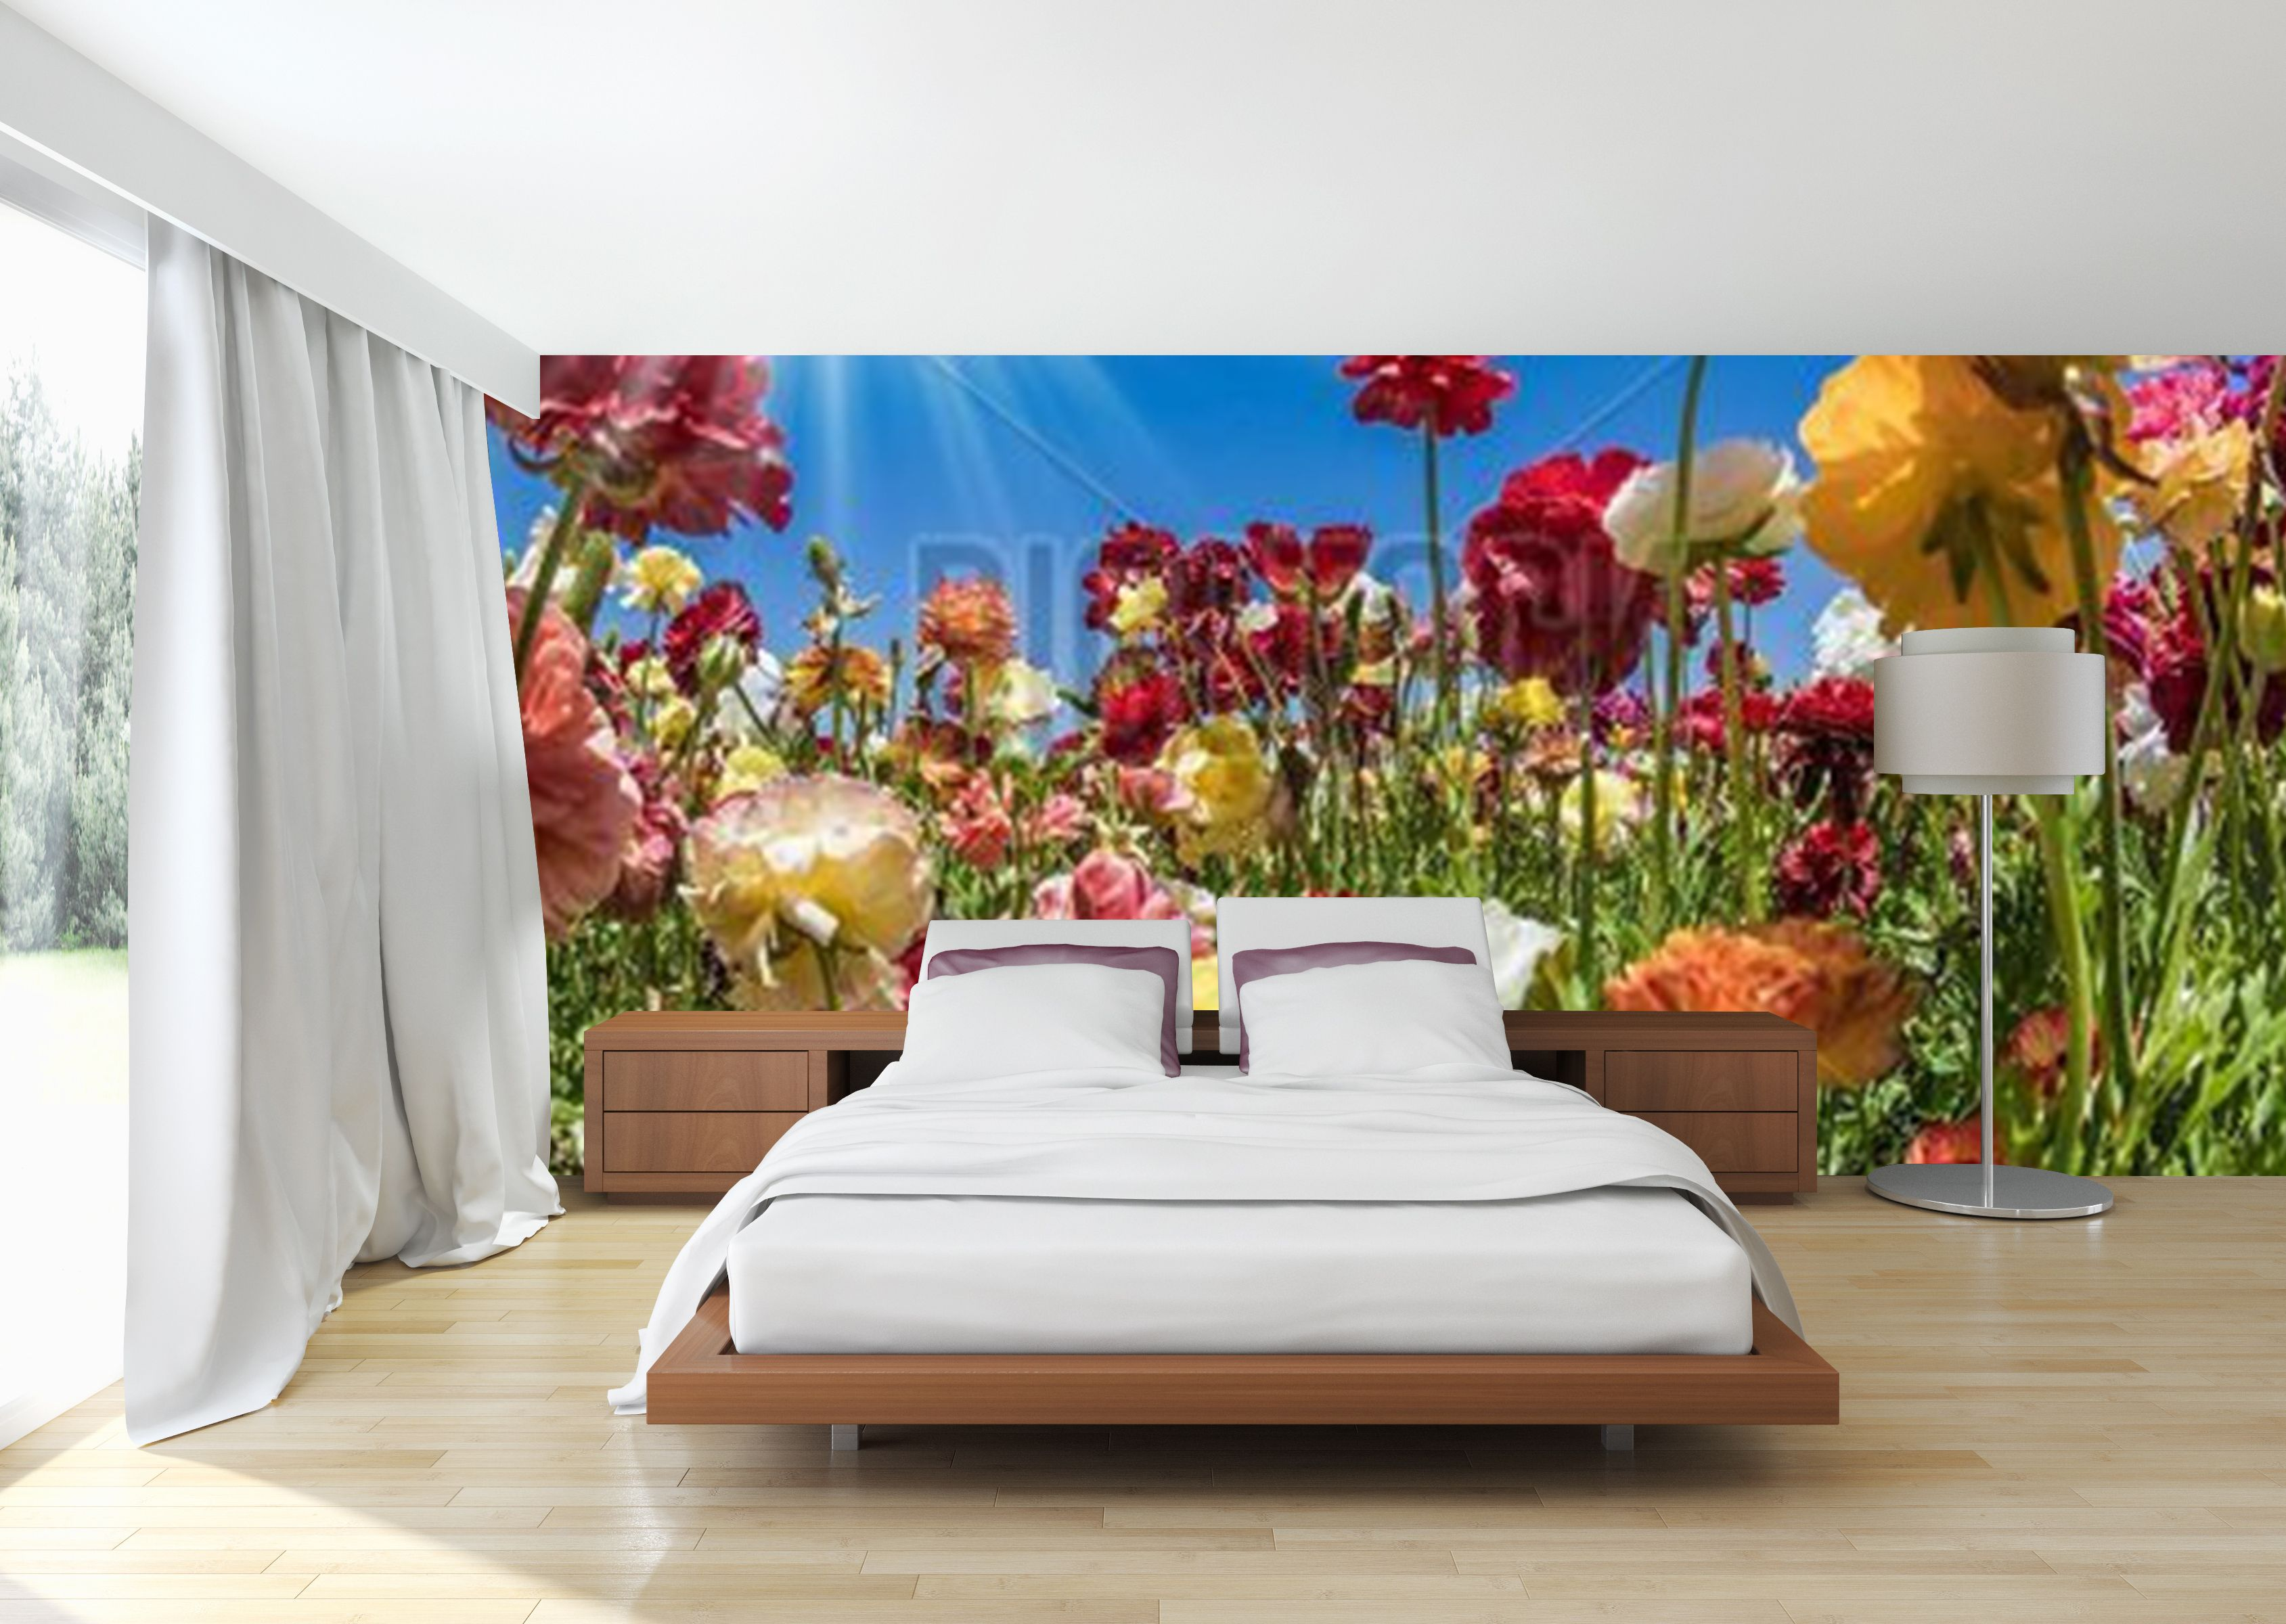 Art4walls Custom Make Self Adhesive Removable Re Usable Wall Murals To Create Your Perfect Feature Wall Witth Litera Fence Decor Wall Murals Dreamy Bedrooms